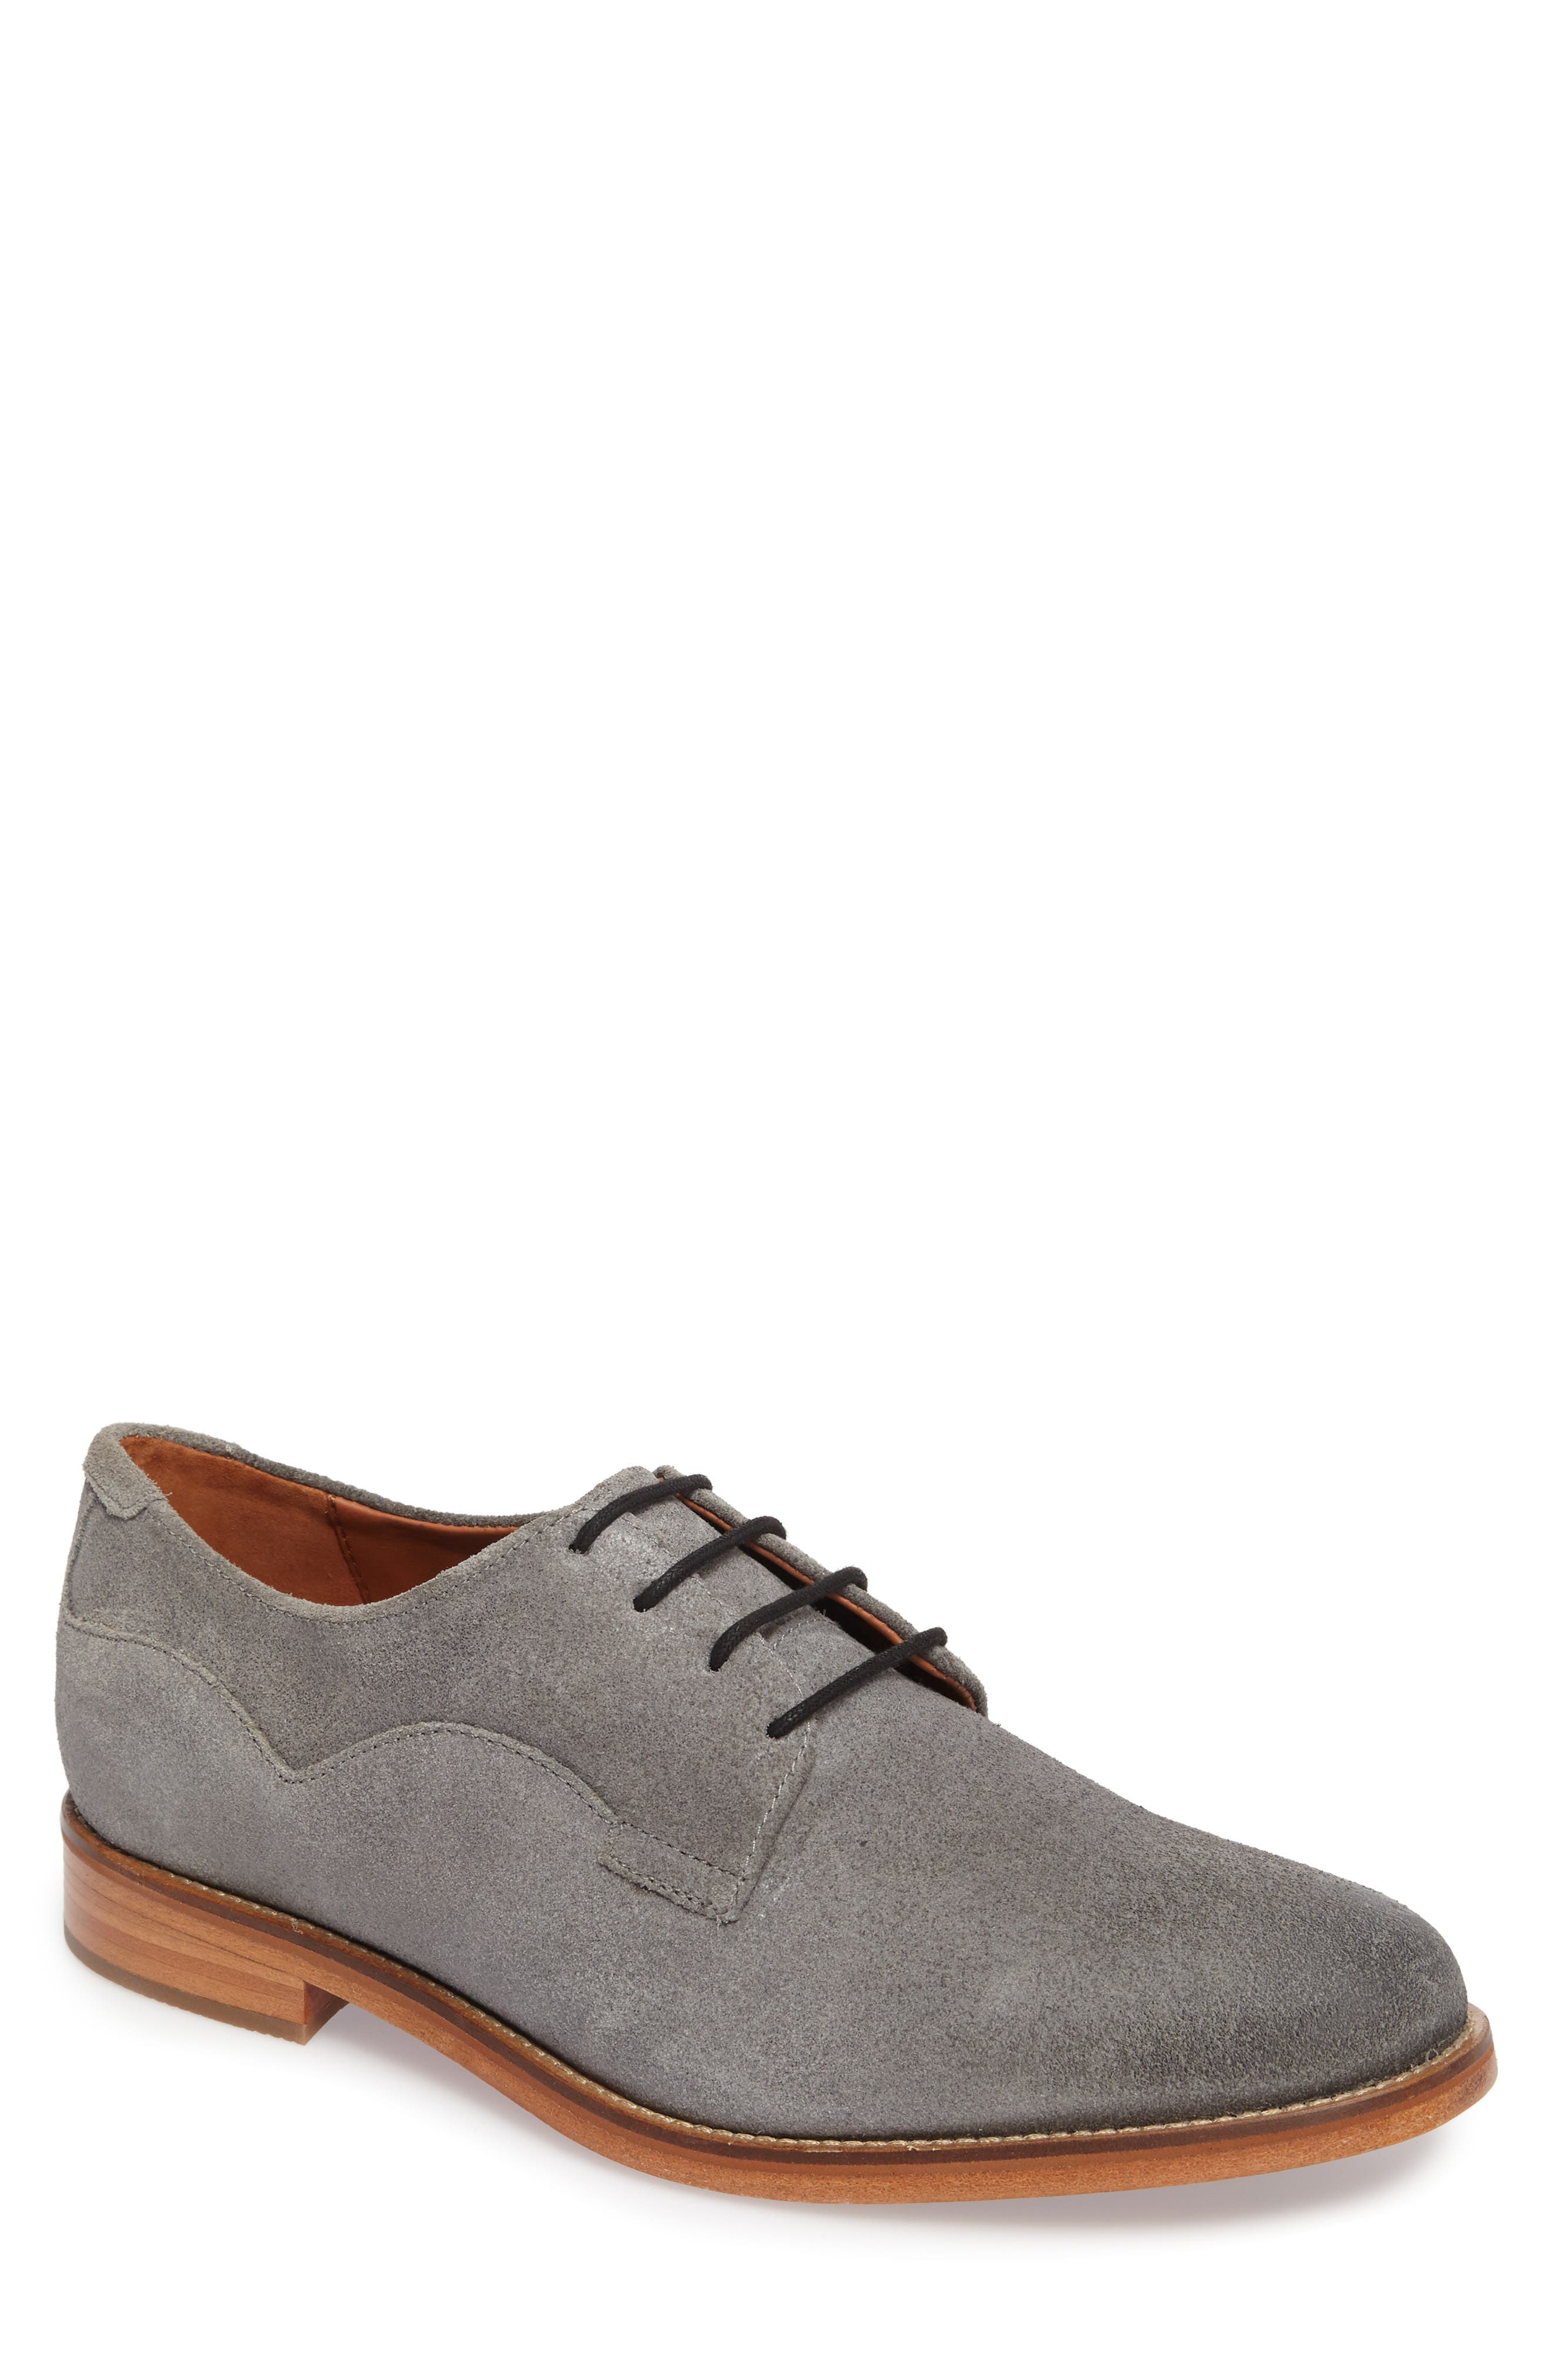 J SHOES Indi Buck Shoe (Men)